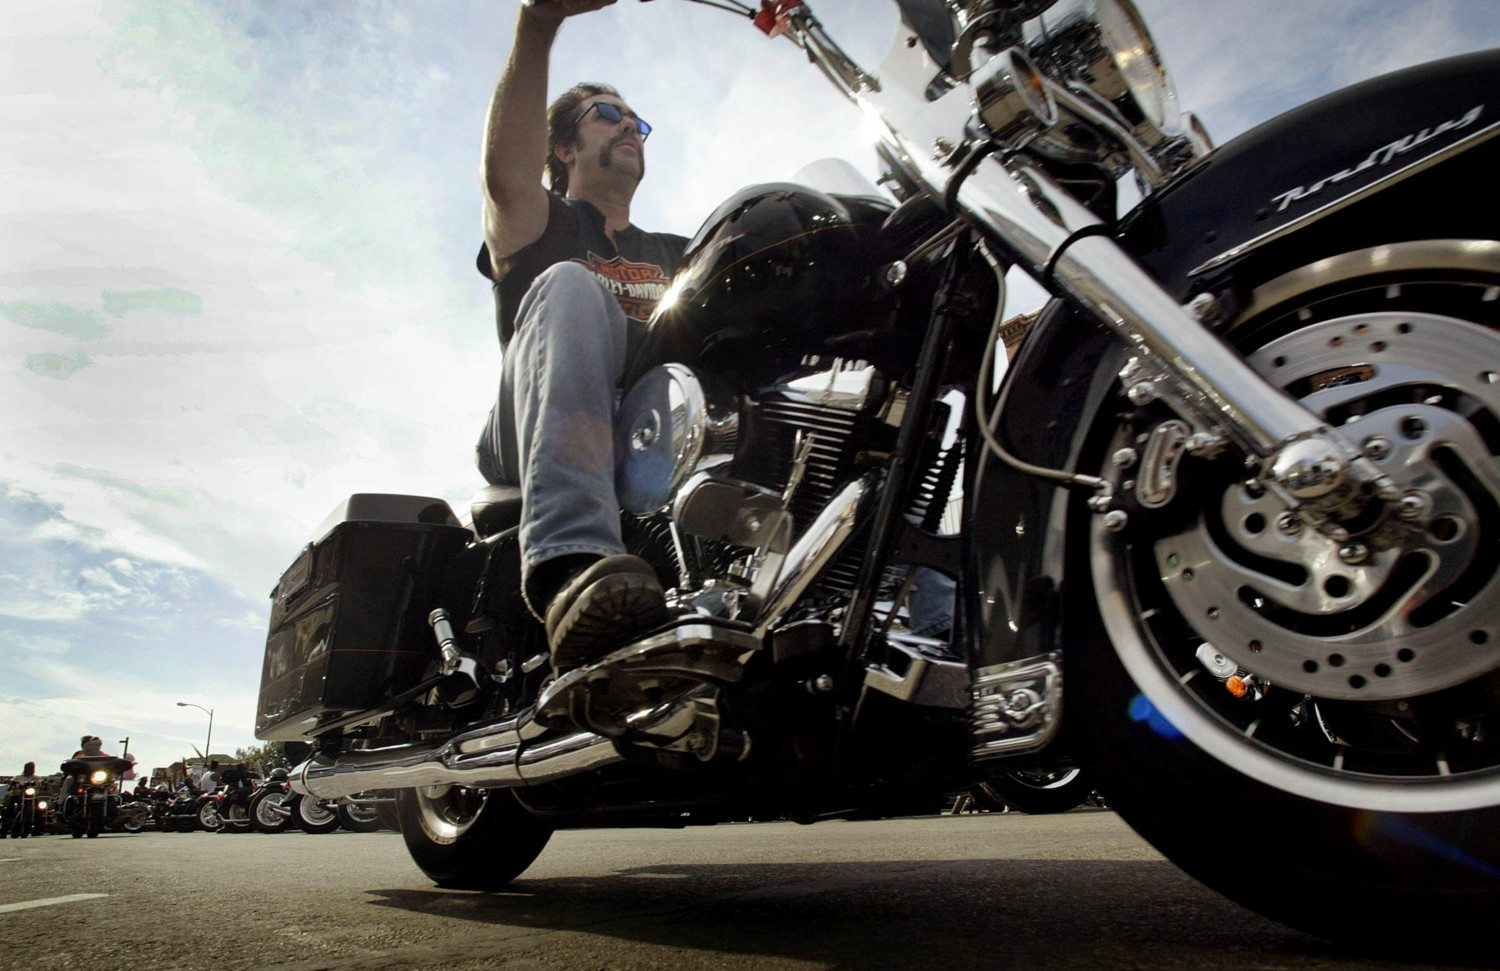 Man riding a Harley-Davidson motorcycle